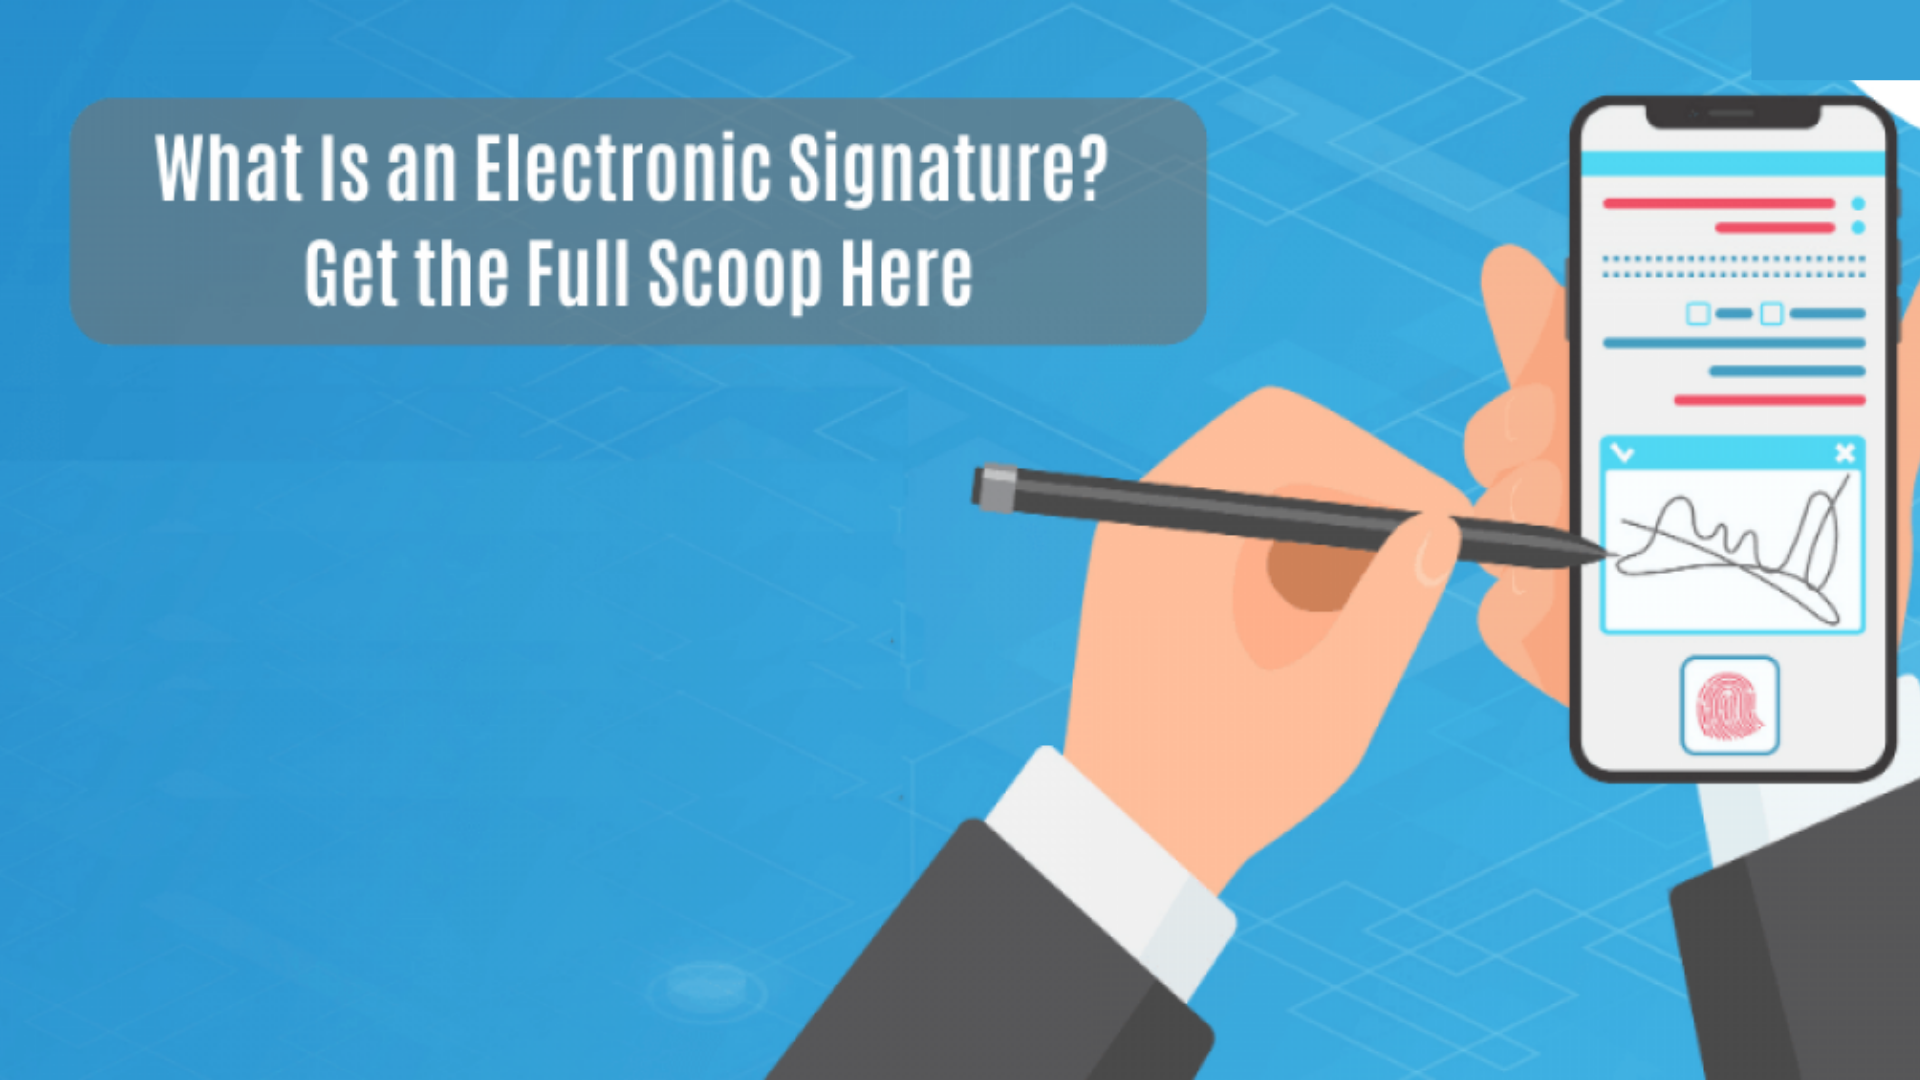 What Is an Electronic Signature? Get the Full Scoop Here.